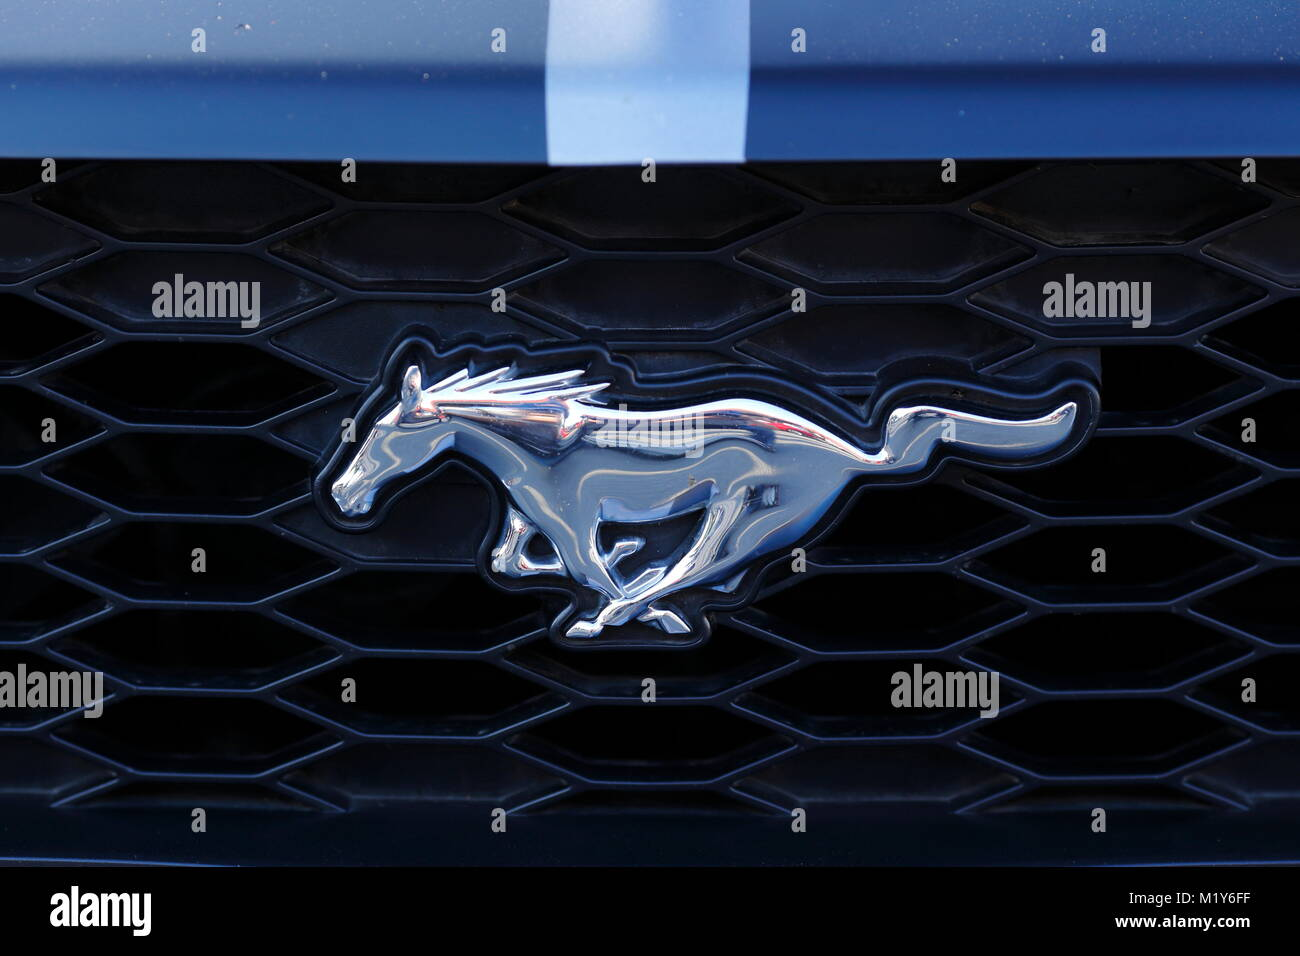 Mustang emblem stock photos mustang emblem stock images alamy ford mustang emblem on radiator of an oldtimer stock image biocorpaavc Gallery